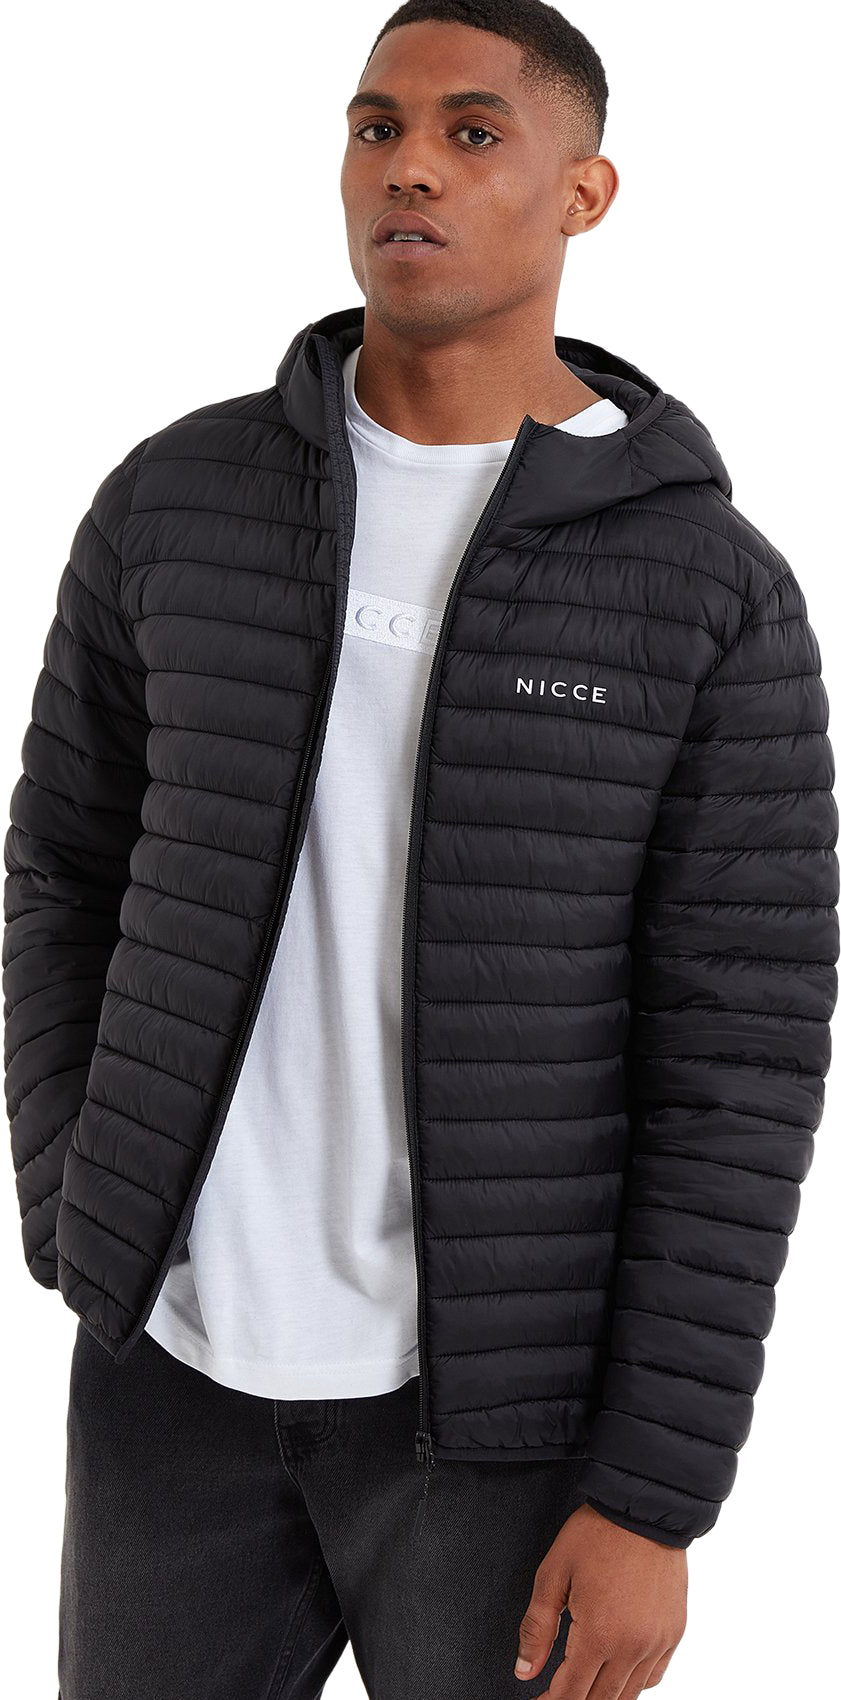 NICCE-Maidan-Hooded-Puffer-Jacket-Black